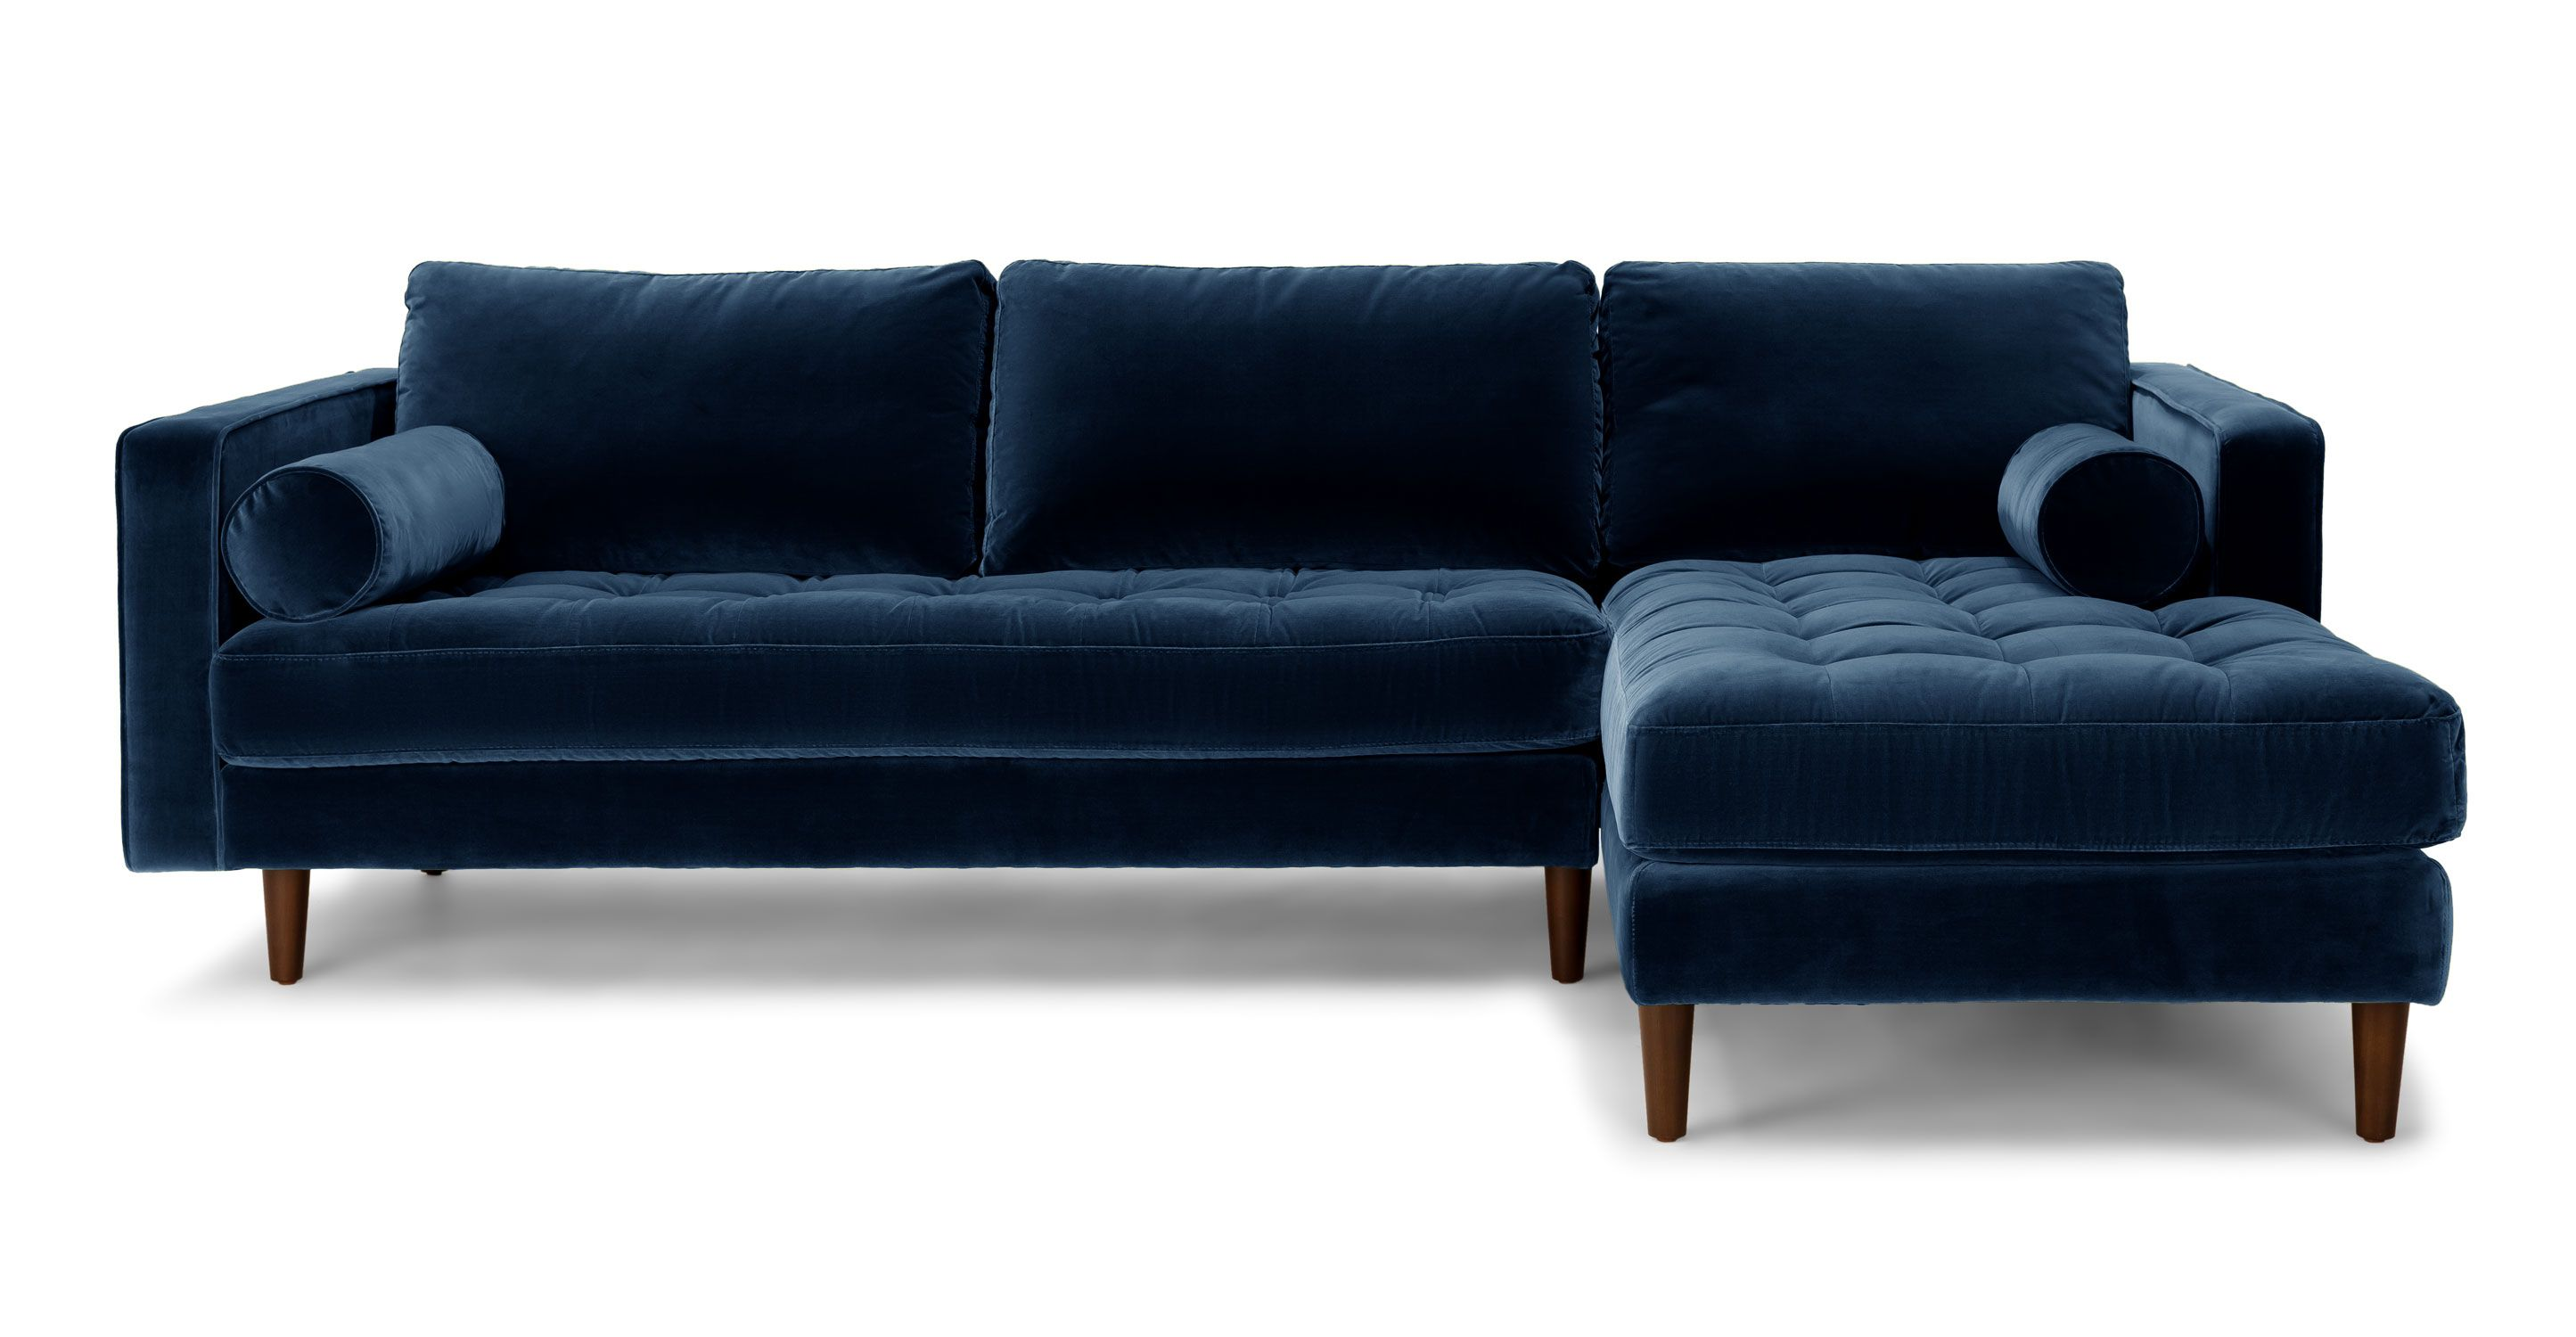 kuk sectionals category archives house denmark upholstery sectional product modern couch of